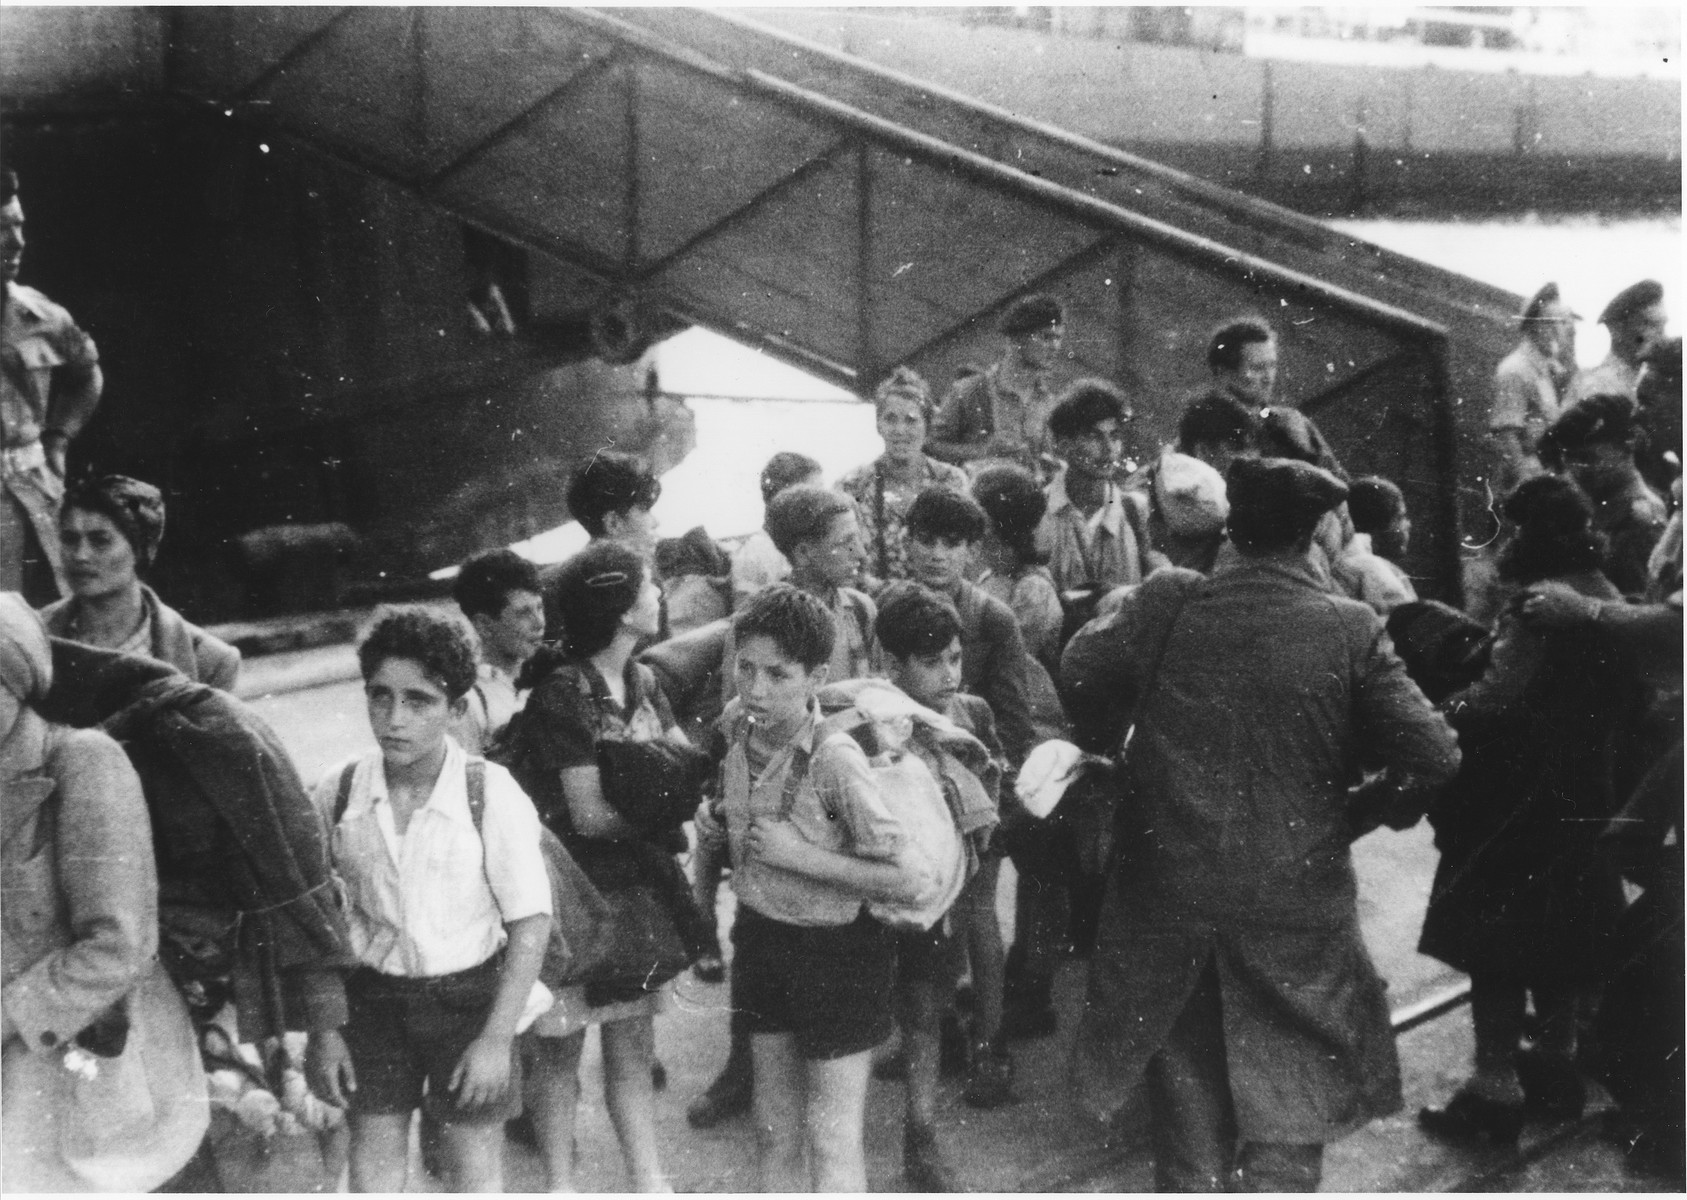 A group of children disembark from the illegal immigrant ship, Exodus 1947, onto the dock in Haifa harbor.